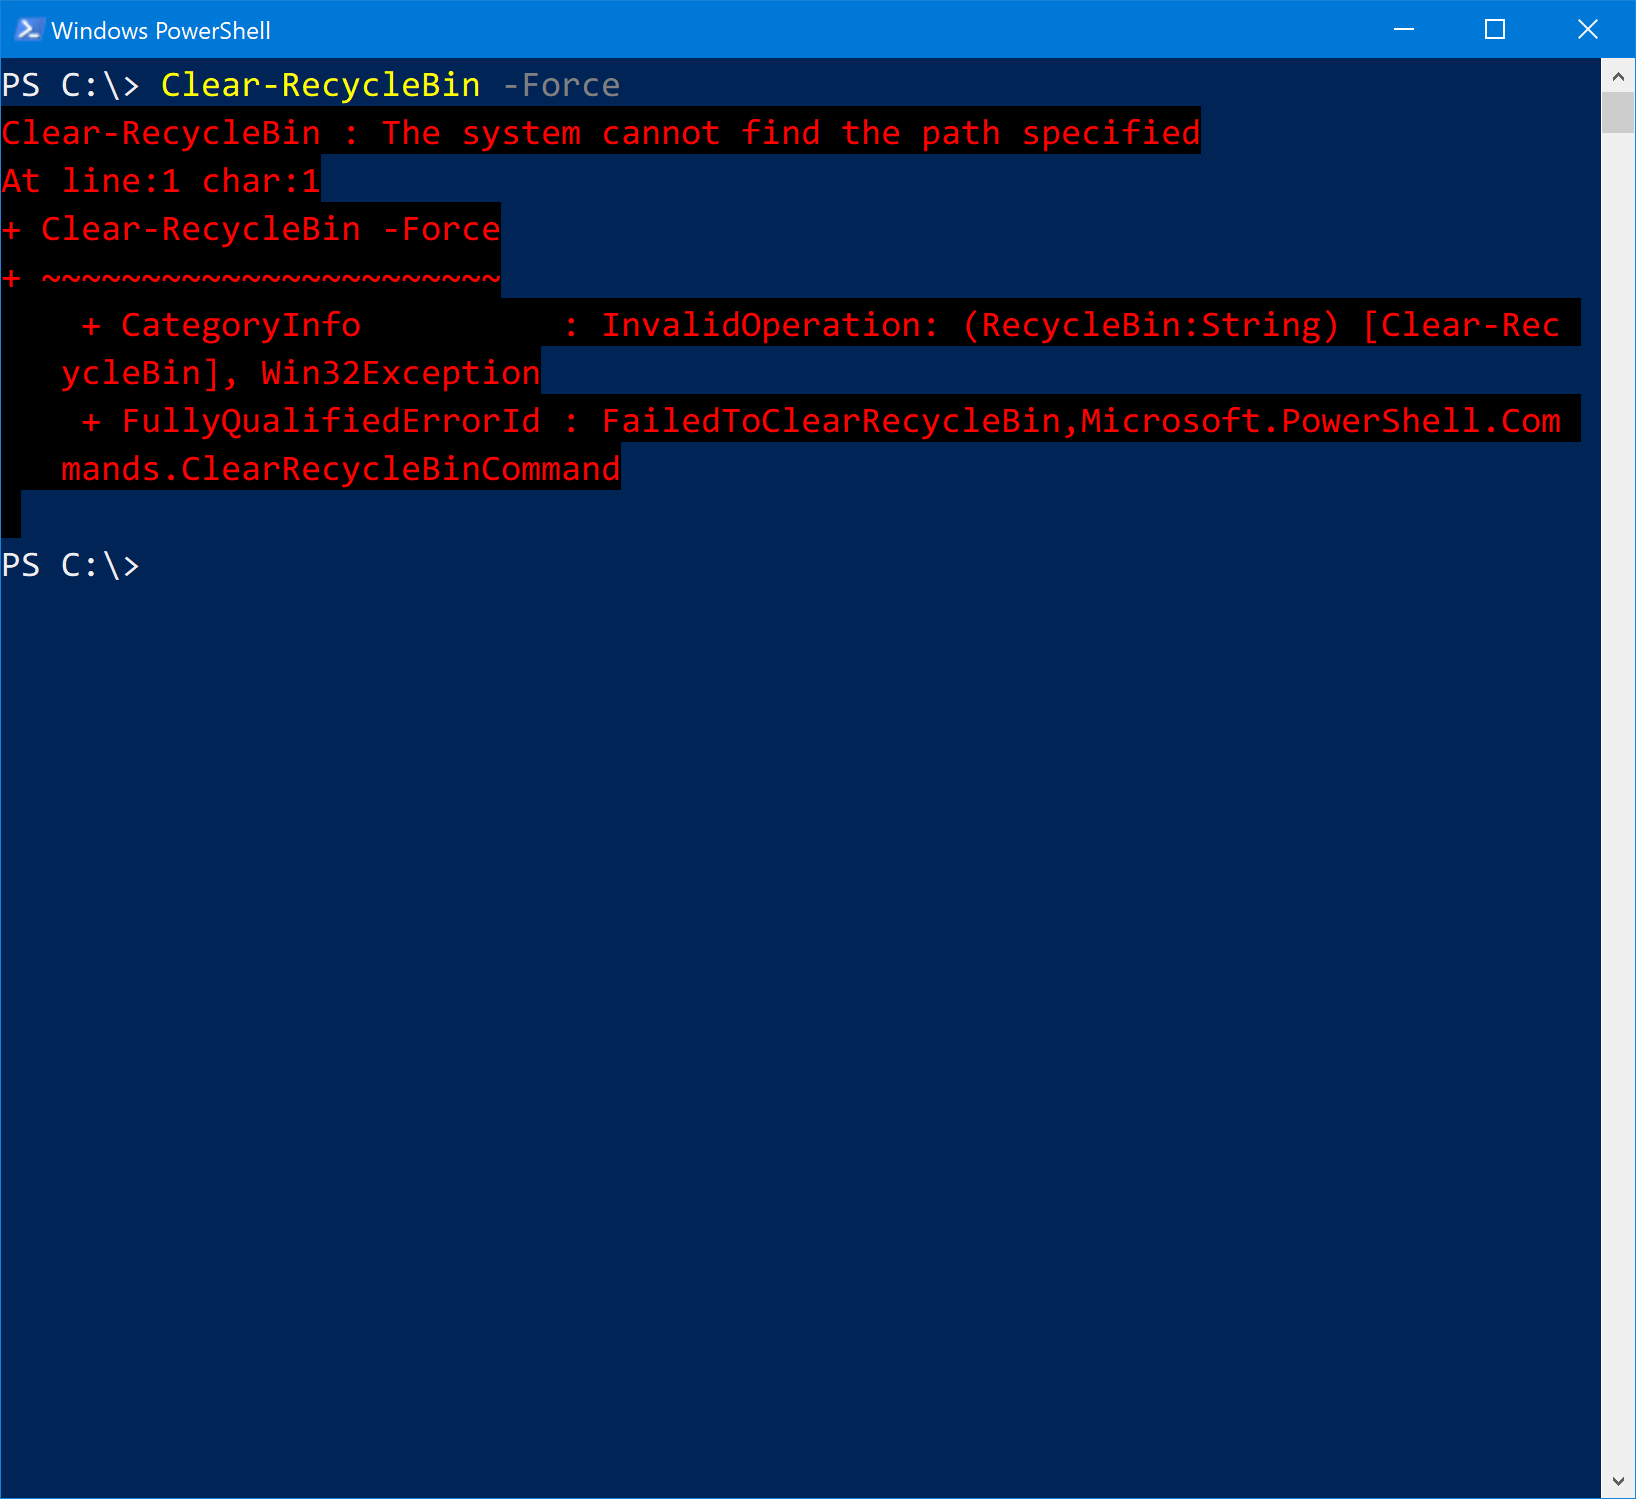 PowerShell codebase misuses SHEmptyRecycleBin function in Clear-RecycleBin cmdlet